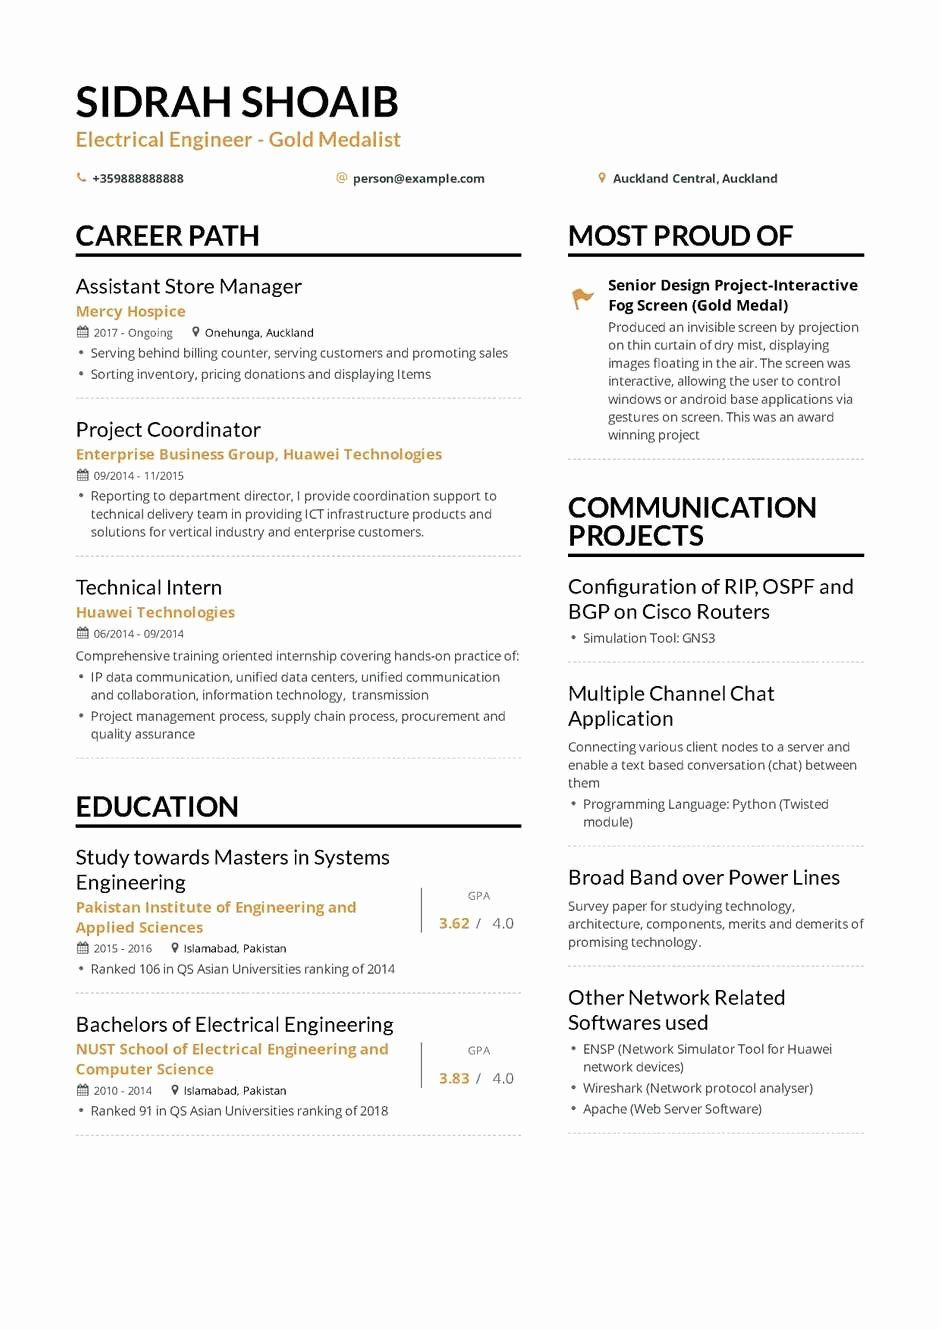 Real Estate Assistant Resume Samples Templates Pdf Doc 2021 Real Estate Assistant Resumes Bot Resume Examples Real Estate Assistant Resume